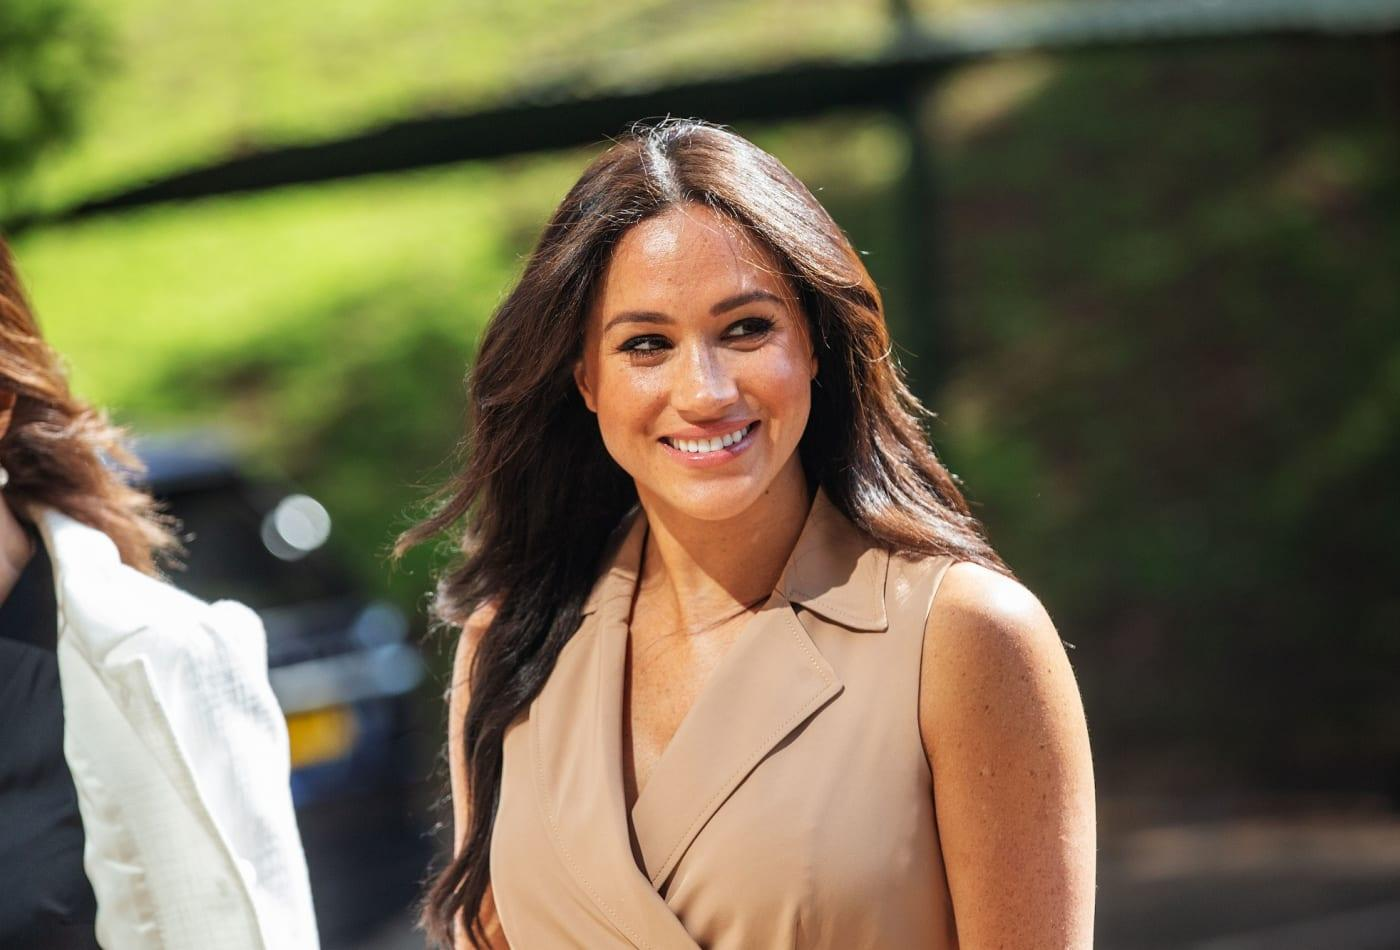 Meghan Markle Insists Her Words Are 'Not Controversial' After Receiving Criticism For Her Political Stance